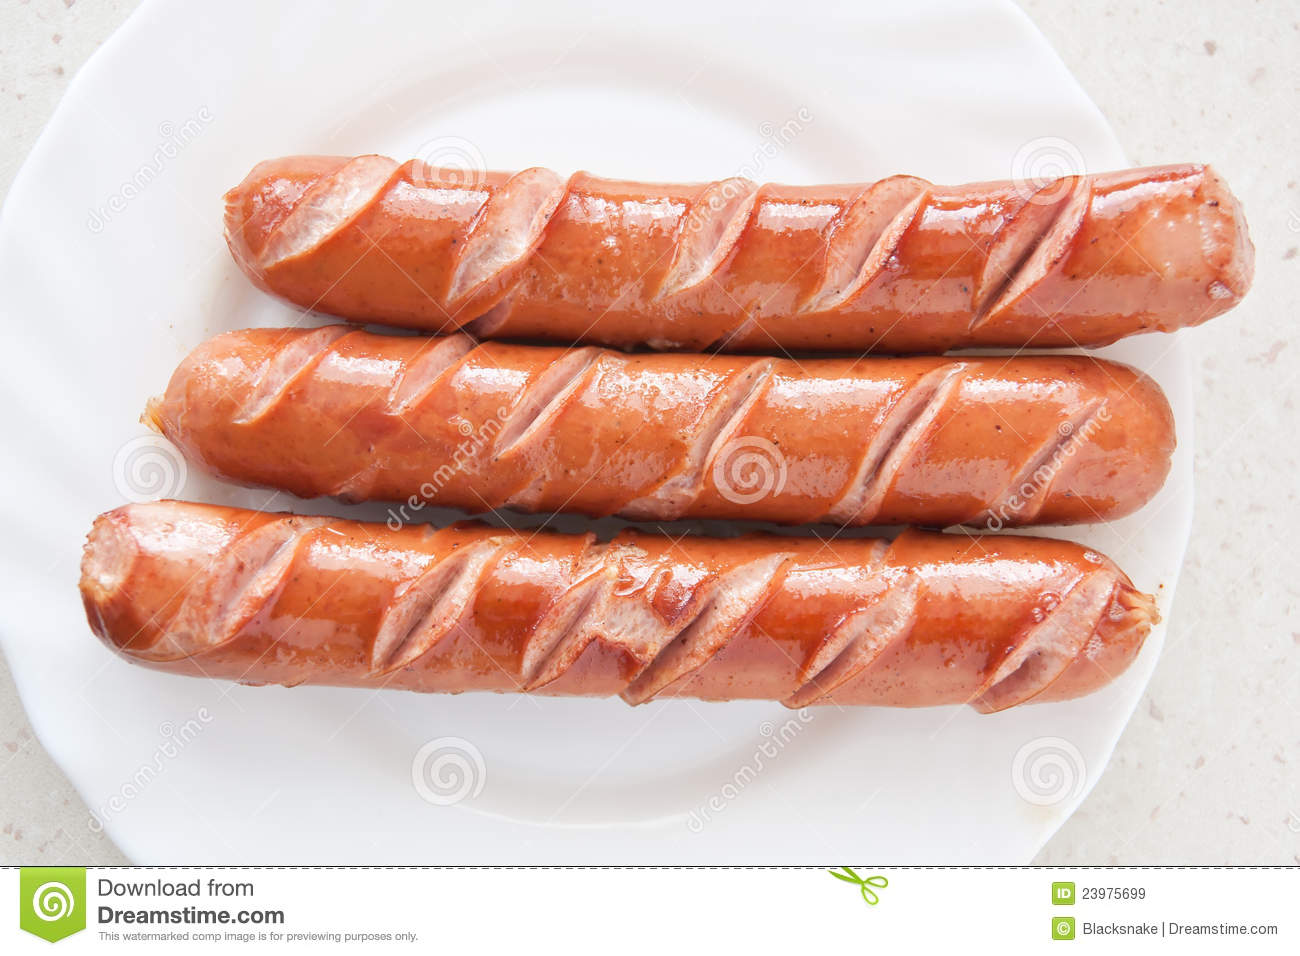 sausage hot dog food at plate royalty free stock images image 23975699. Black Bedroom Furniture Sets. Home Design Ideas